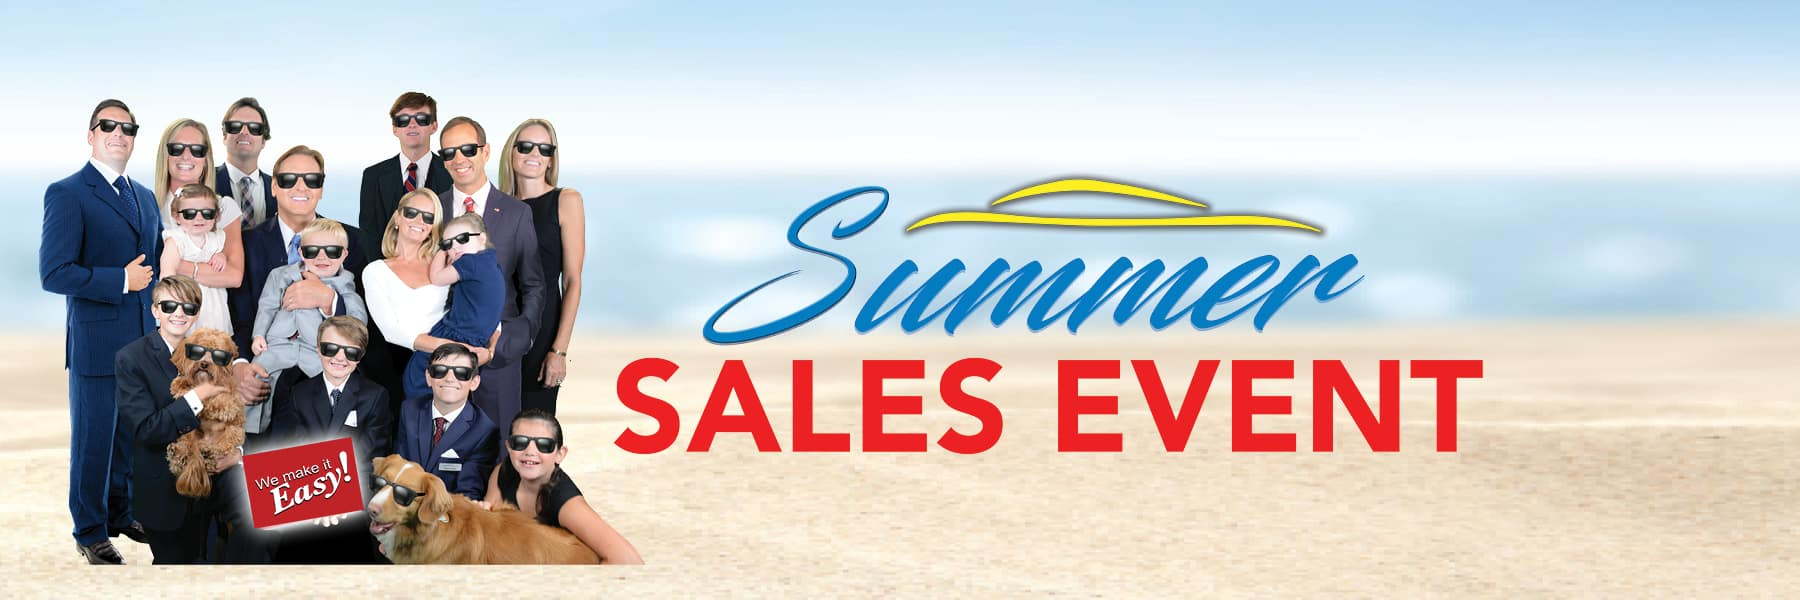 Summer Sales Event at Kelly Automotive Group